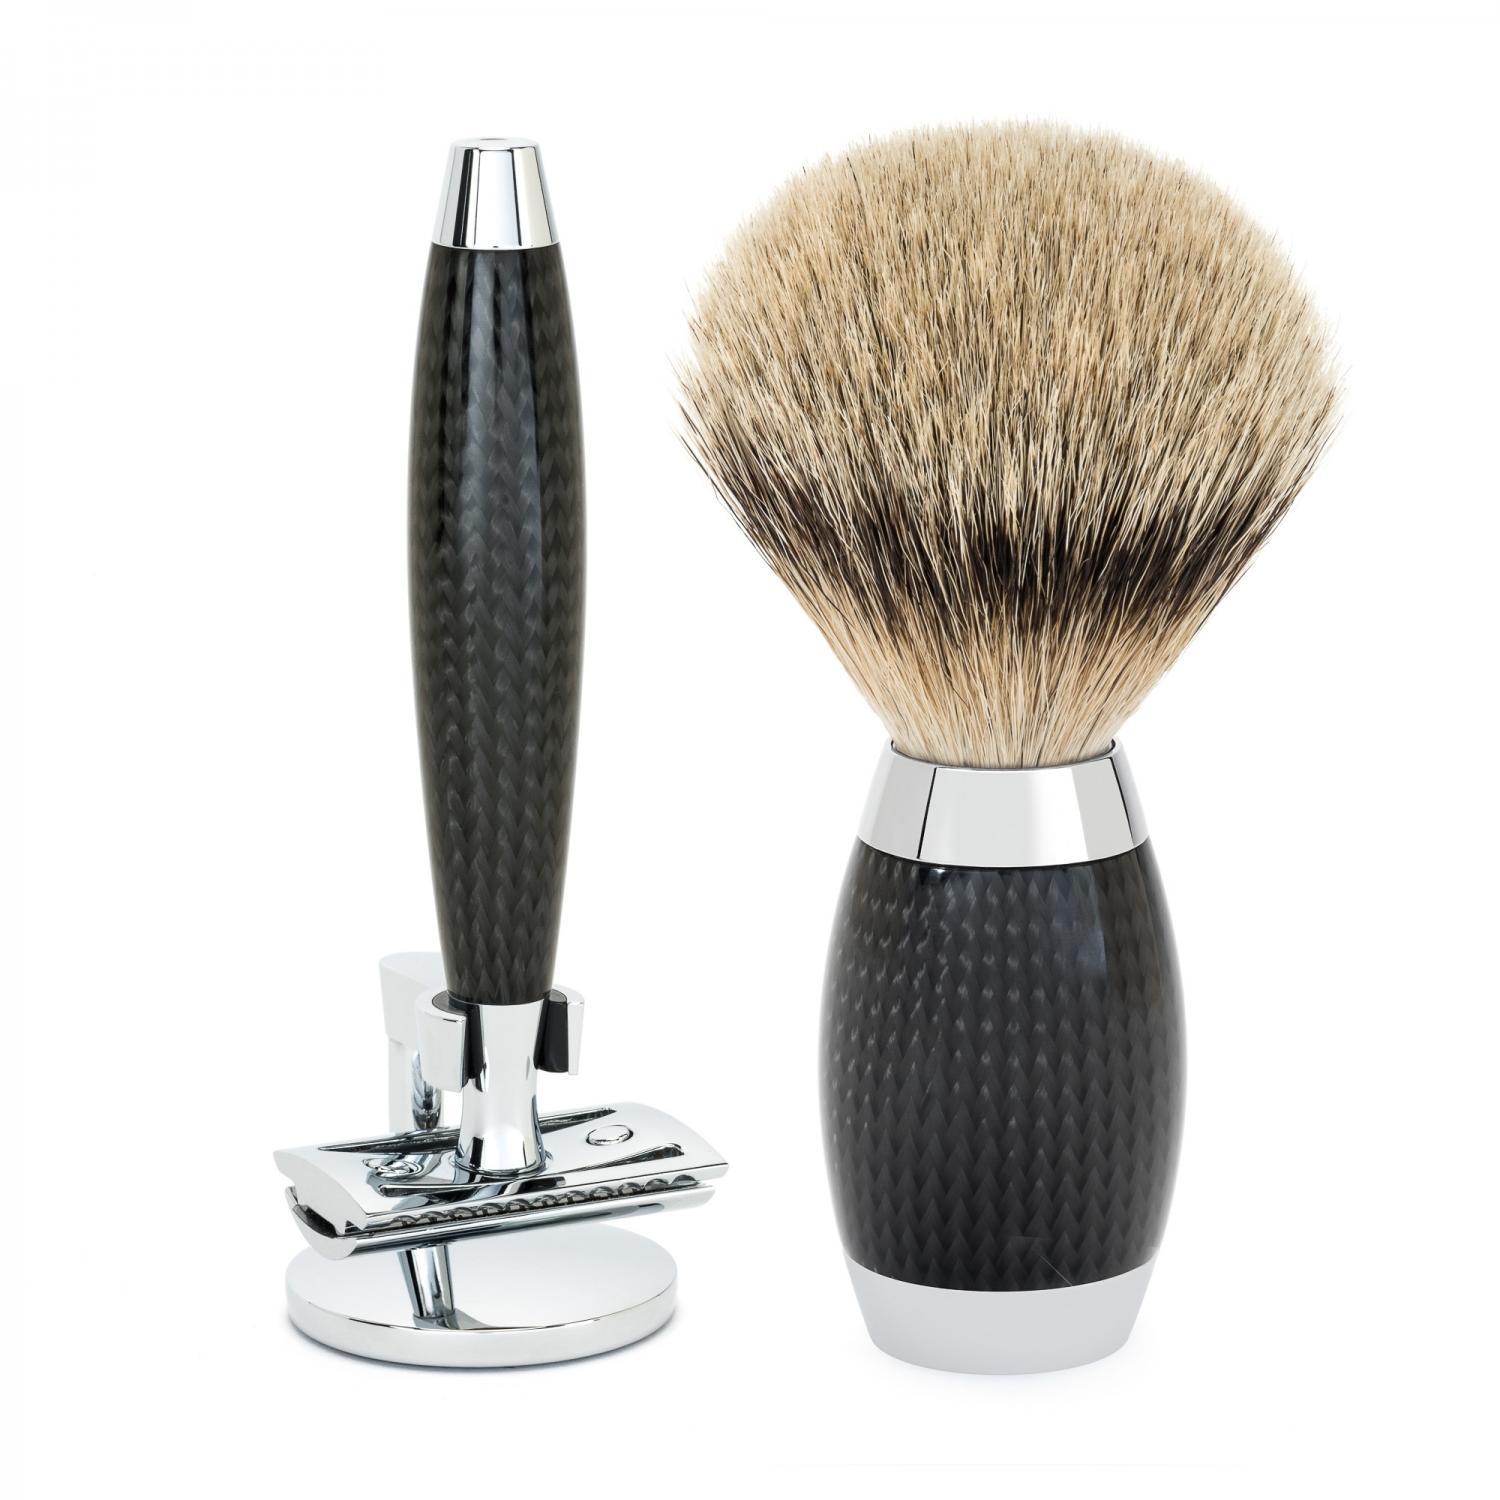 MUHLE EDITION Carbon Handle Safety Razor and Shaving Brush Set